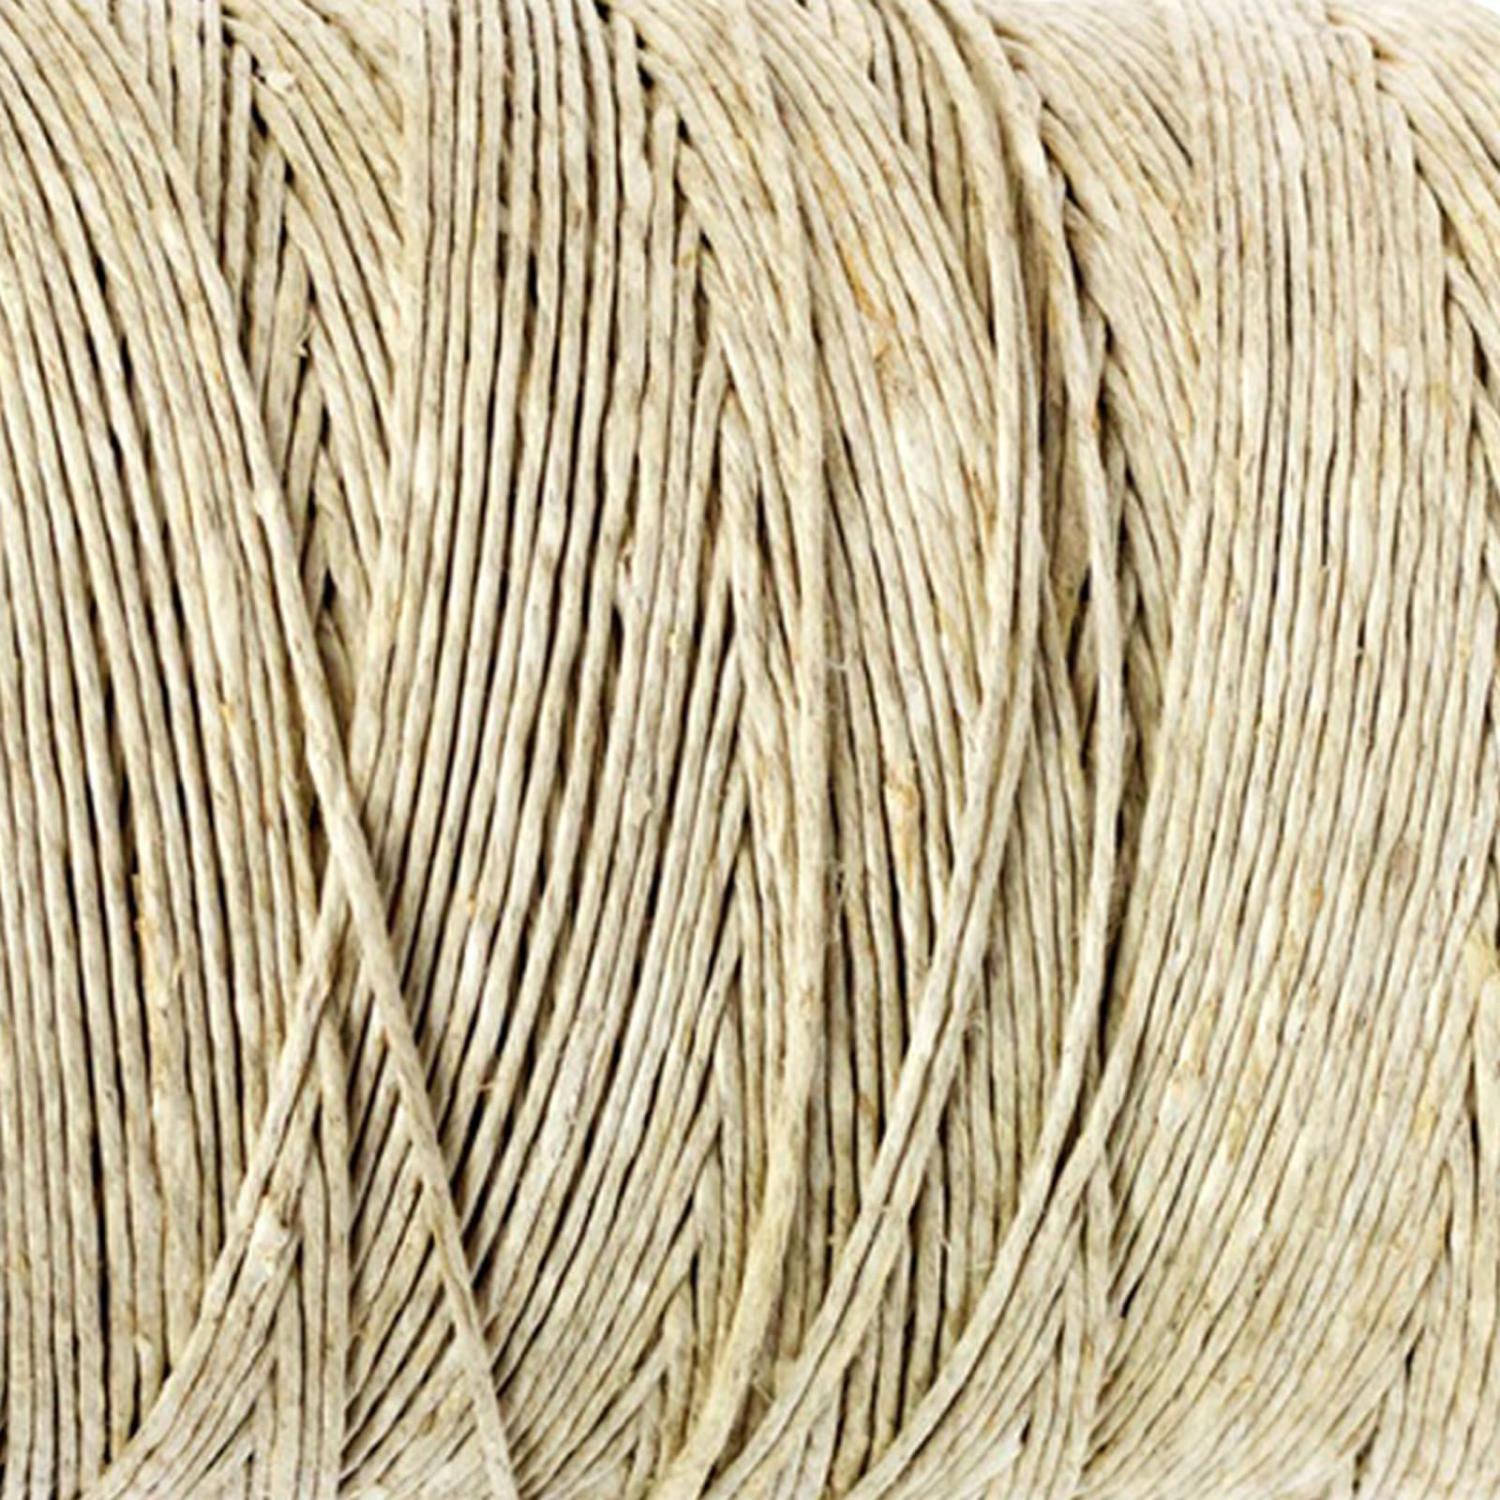 Hemp cord naturel 0,8mm x 100m